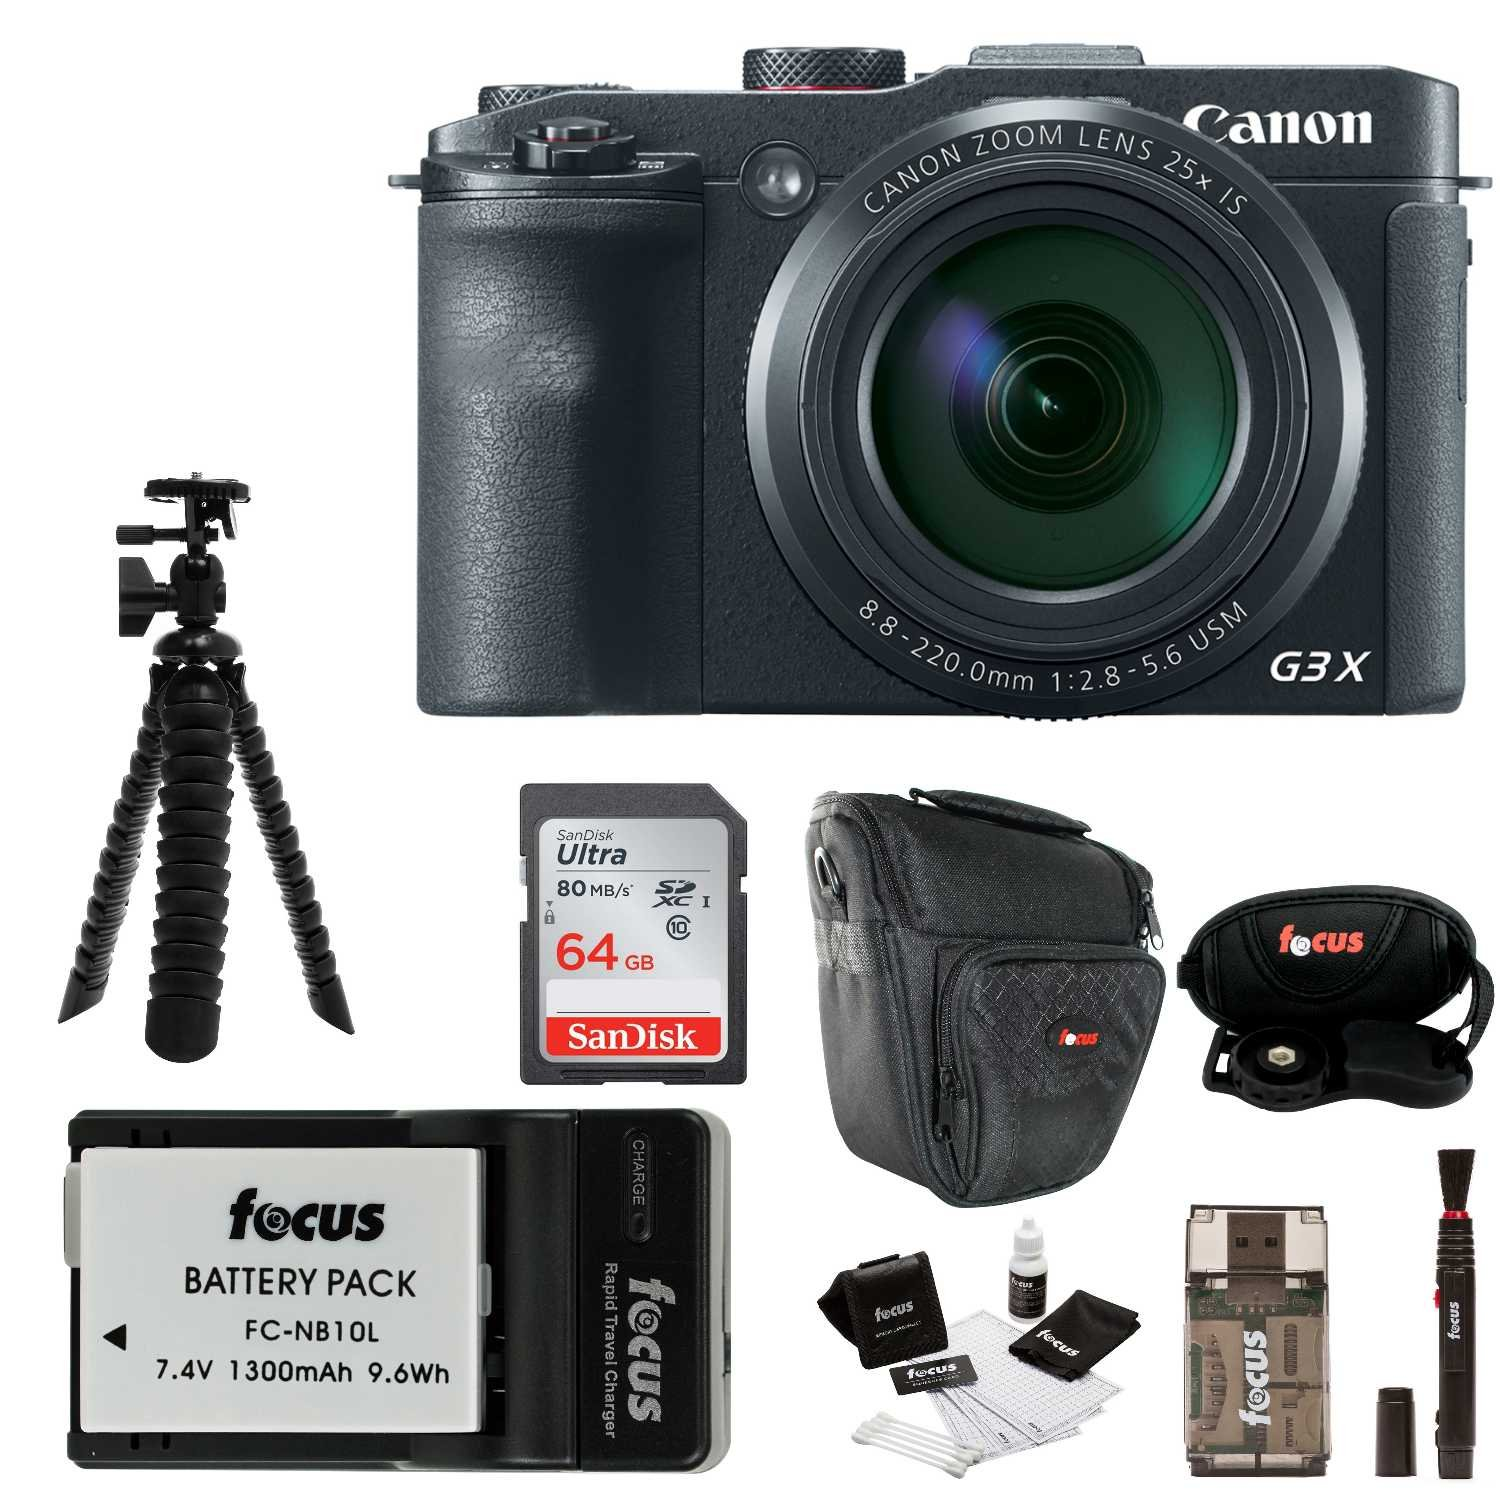 Canon Powershot G3 X 202 Megapixel Digital Camera With Wi Fi And Nfc 64gb Accessory Bundle Photo